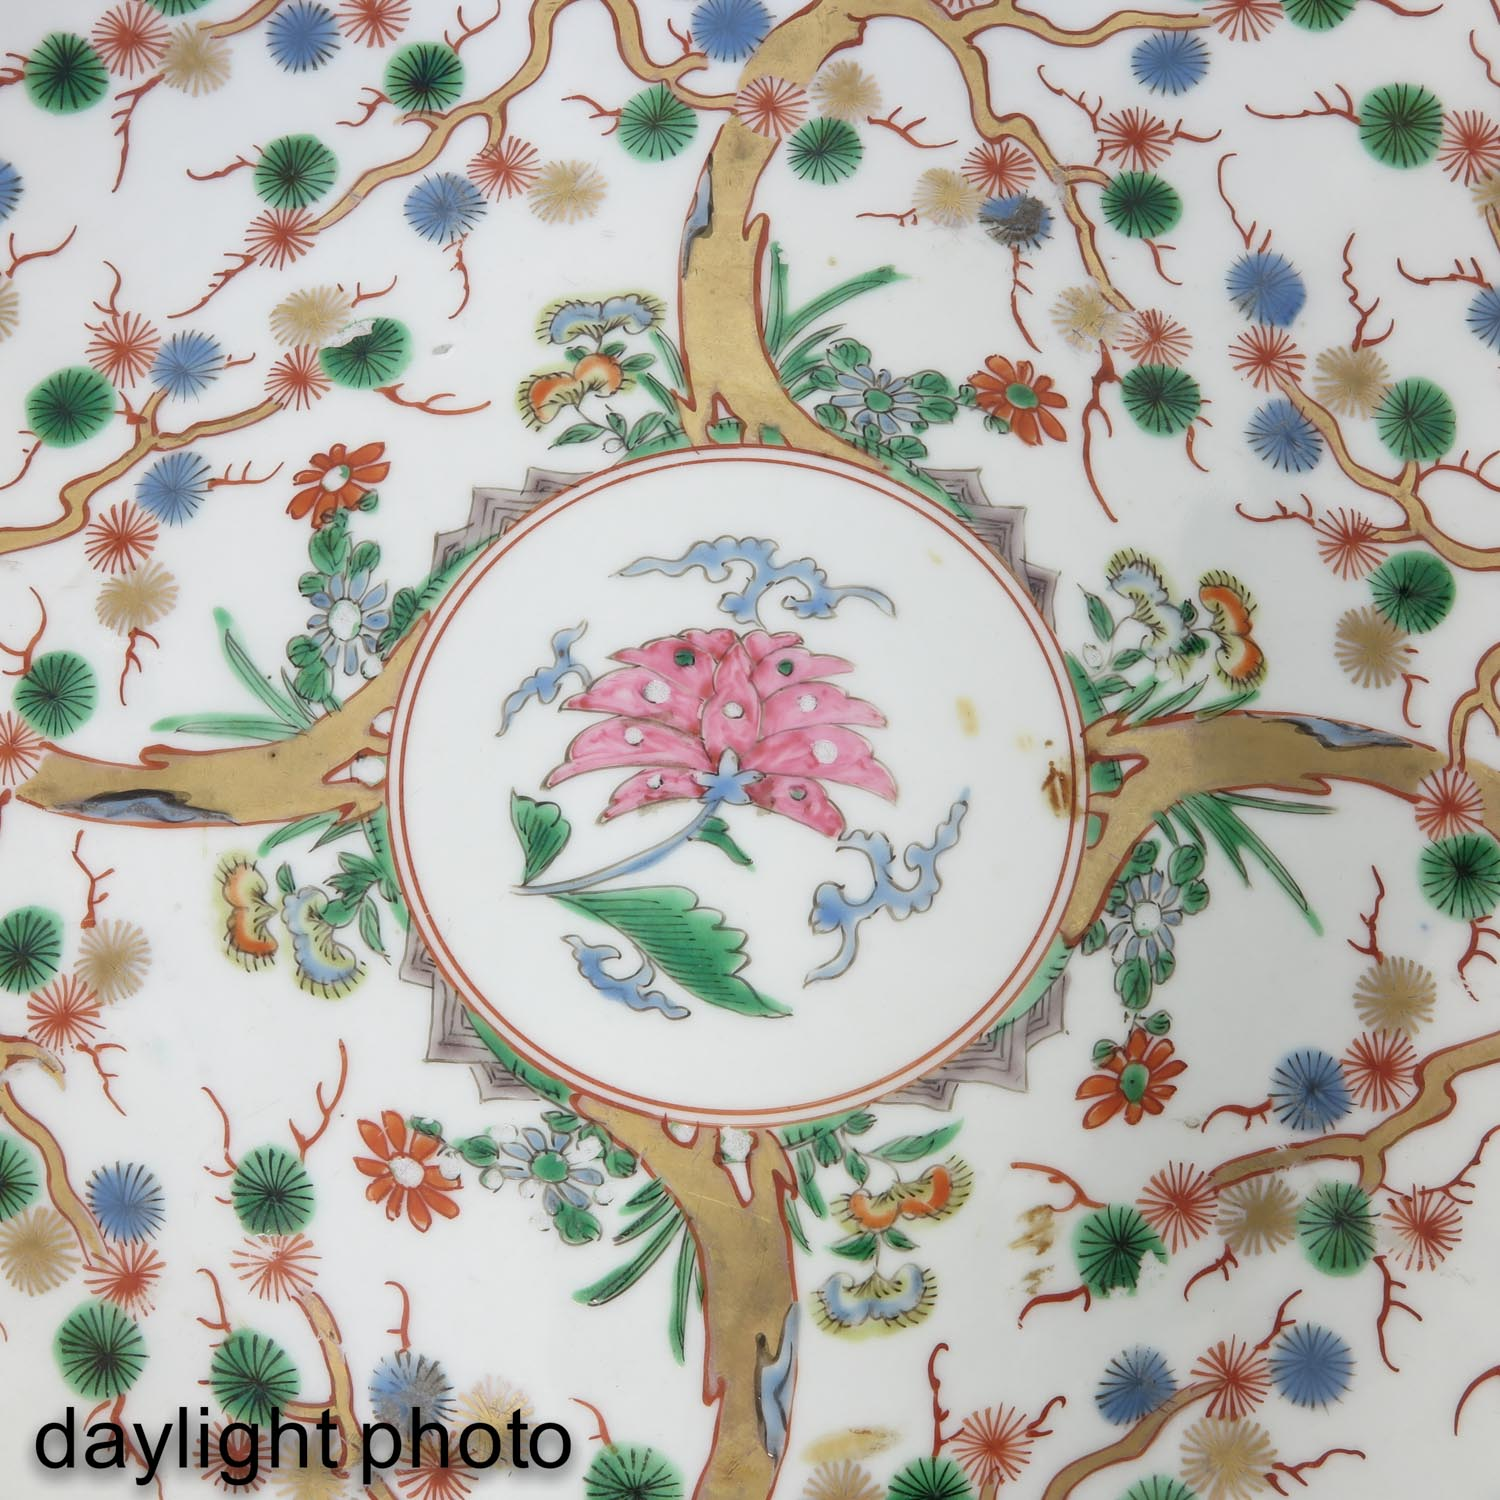 A Polychrome Decor Charger - Image 6 of 6